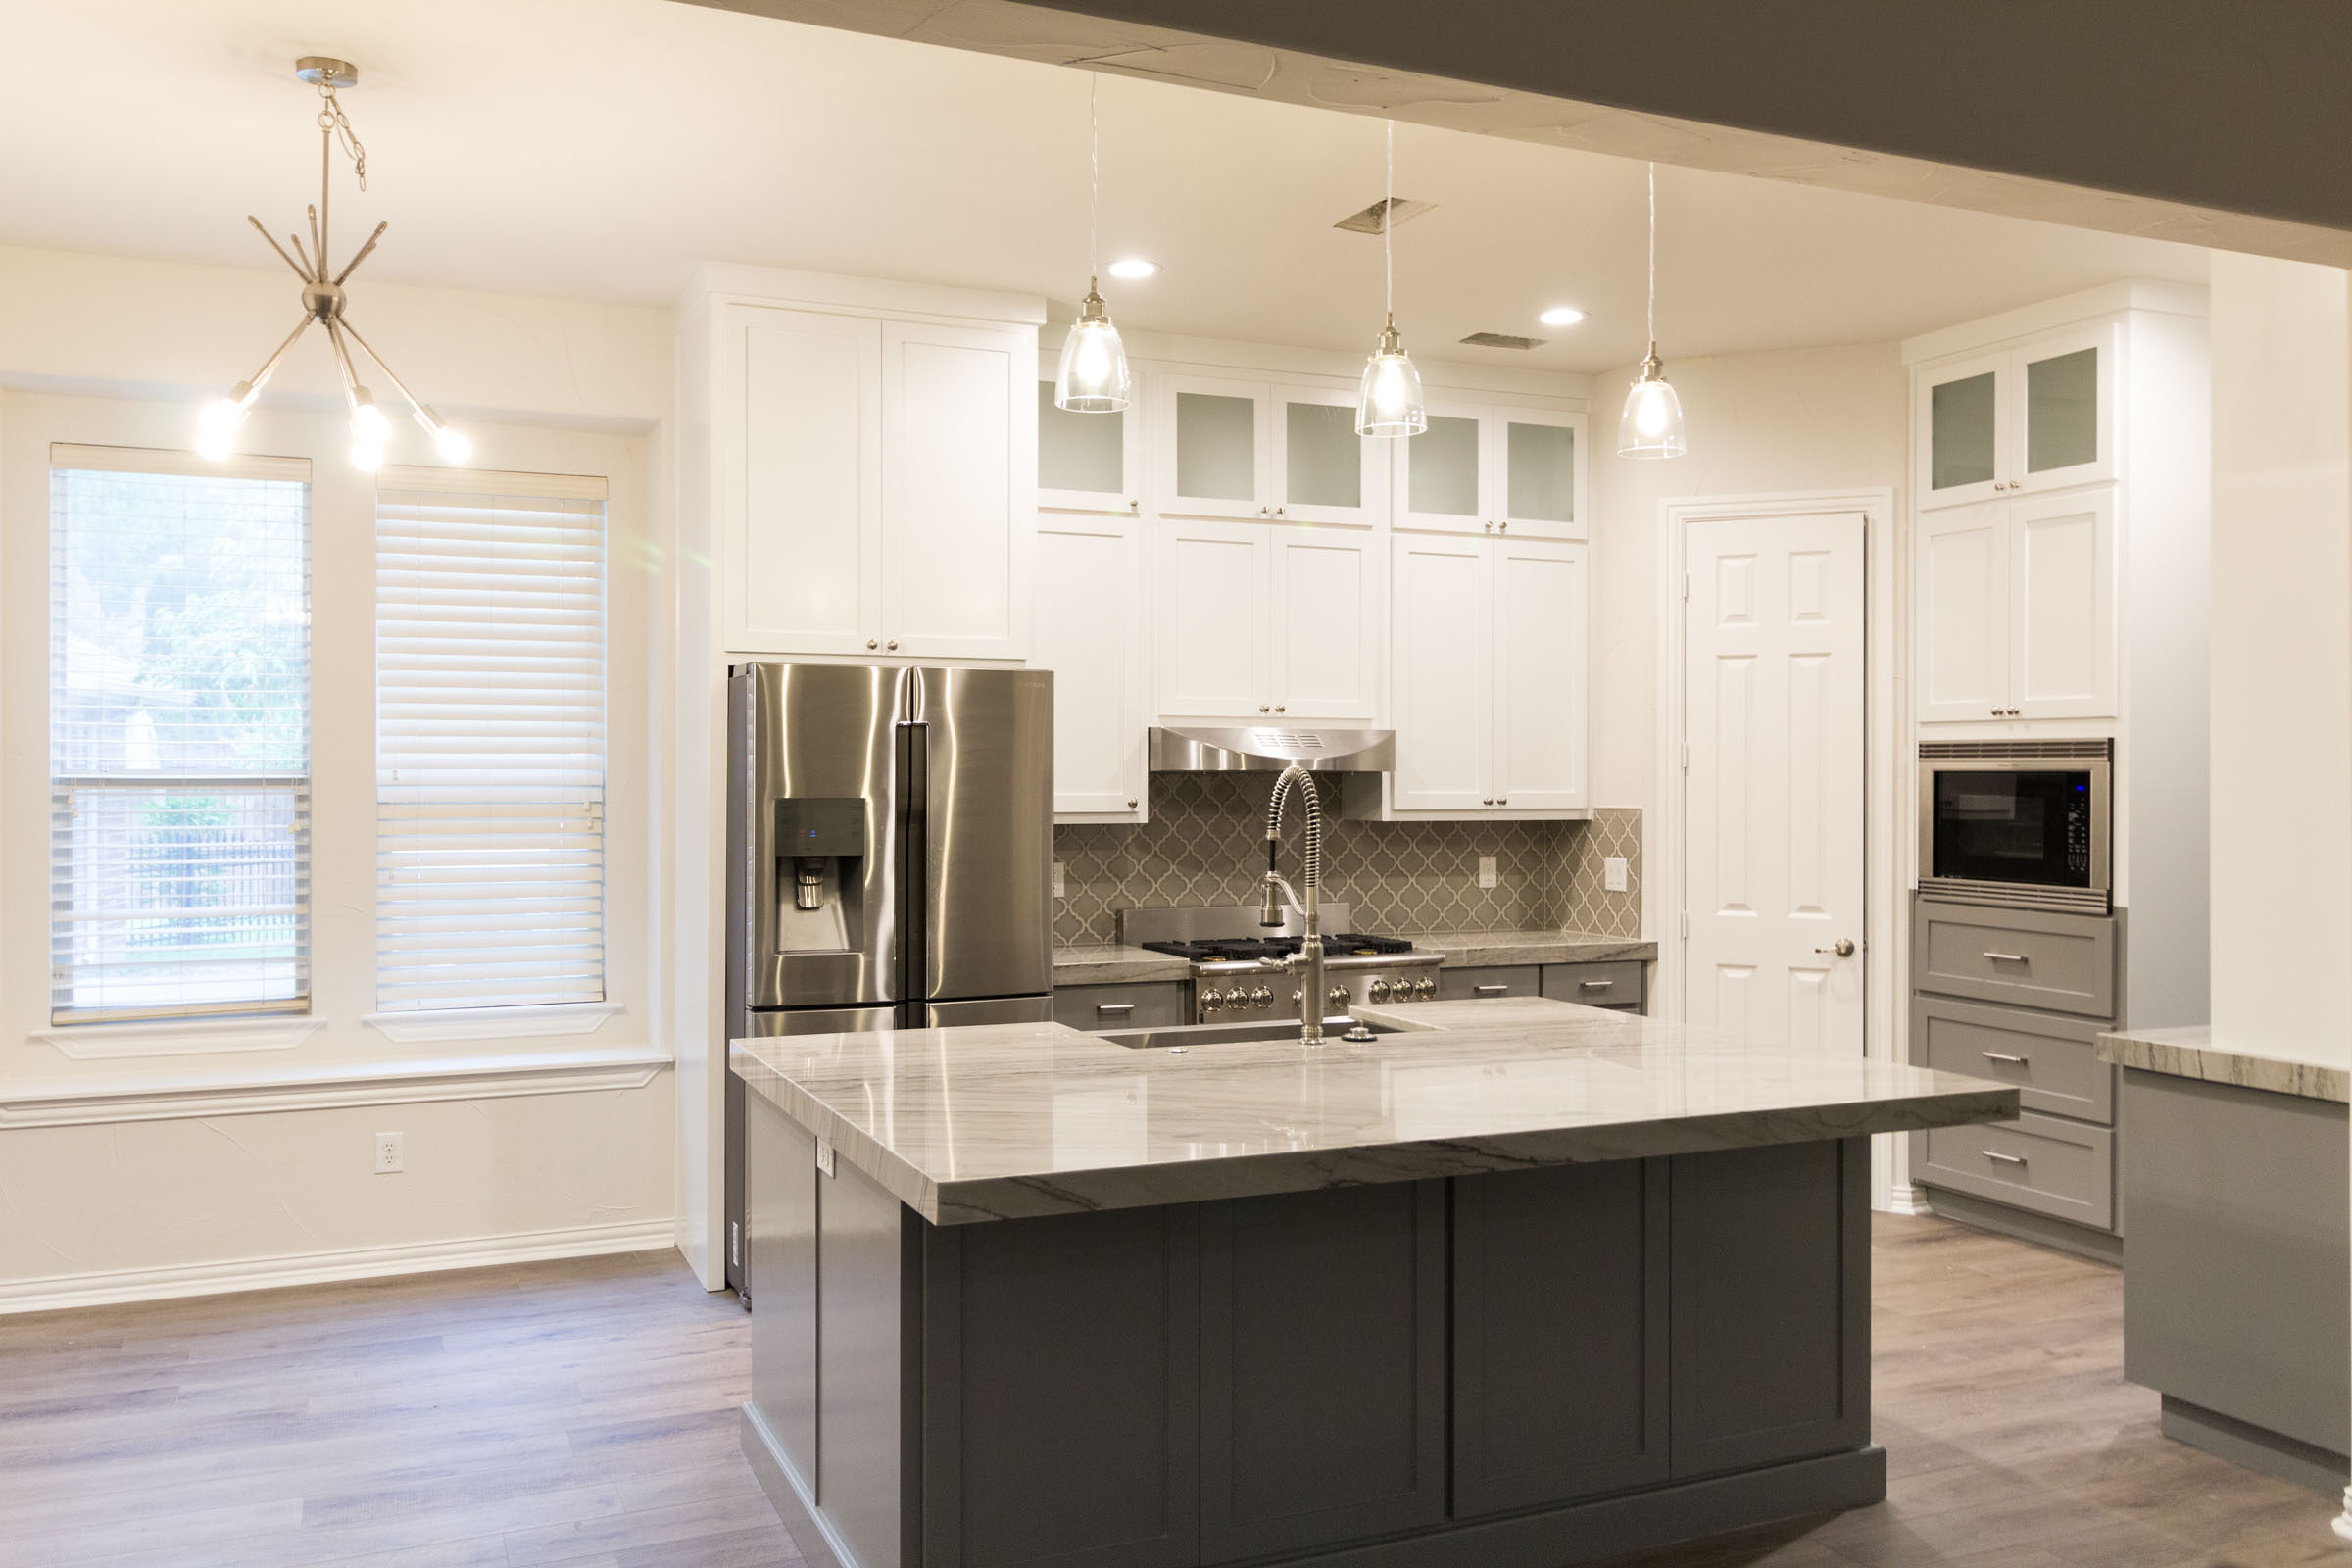 White angle picture of Contemporary kitchen remodel, grey and white, shaker cabinets, stainless steel, farmhouse sink, open floor plan